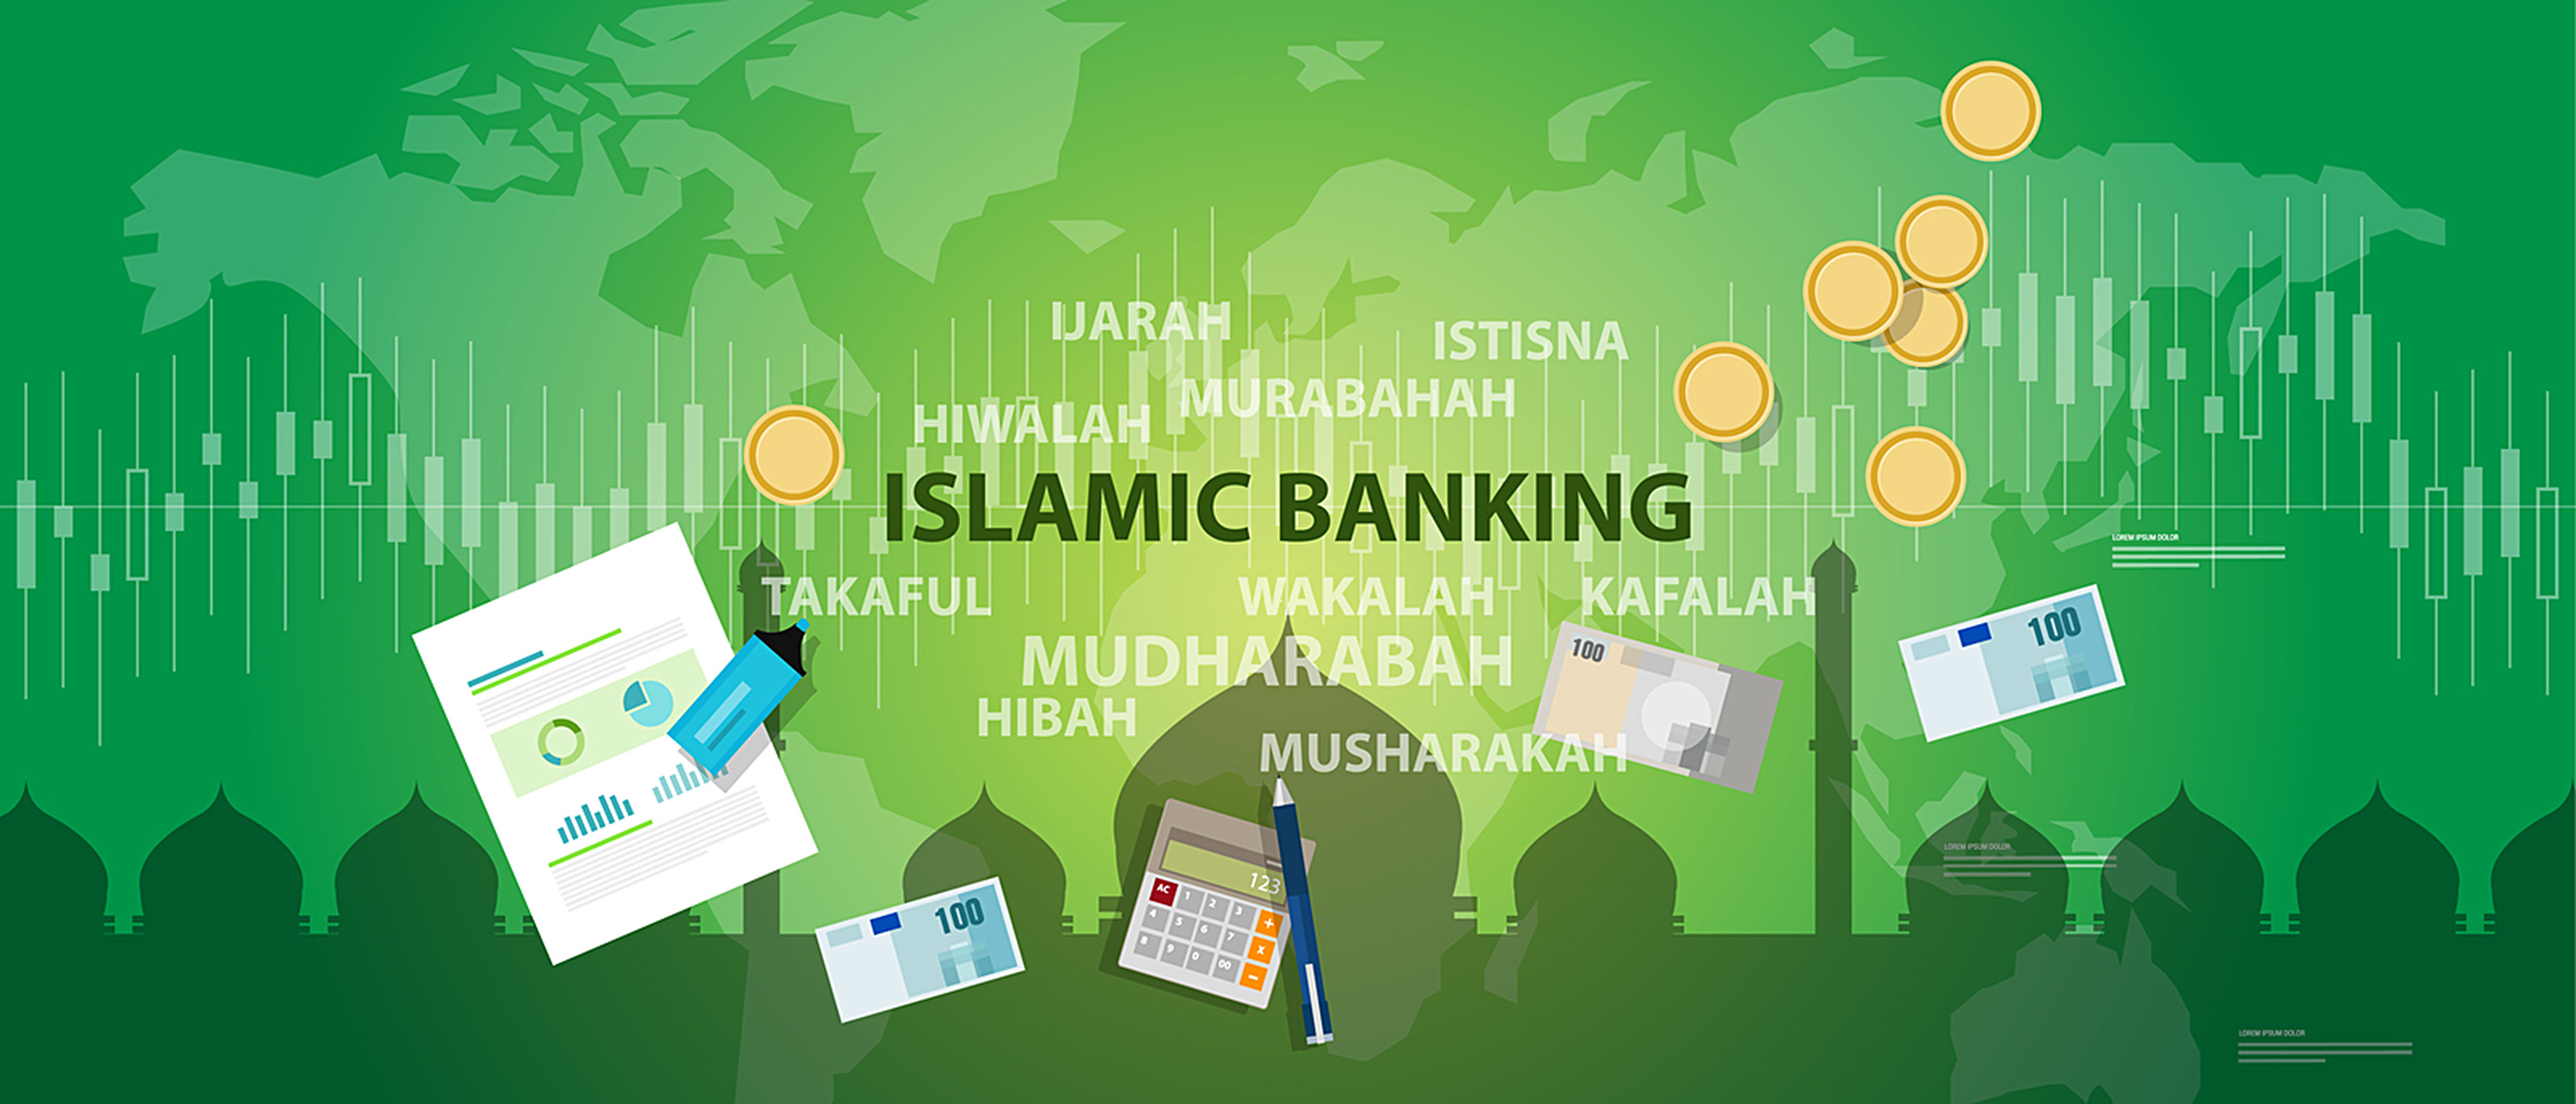 islamic finance on the rise Lecture details since its formation in the mid-1970s islamic finance has grown rapidly, and appears to have come of age since the global financial crisis by.